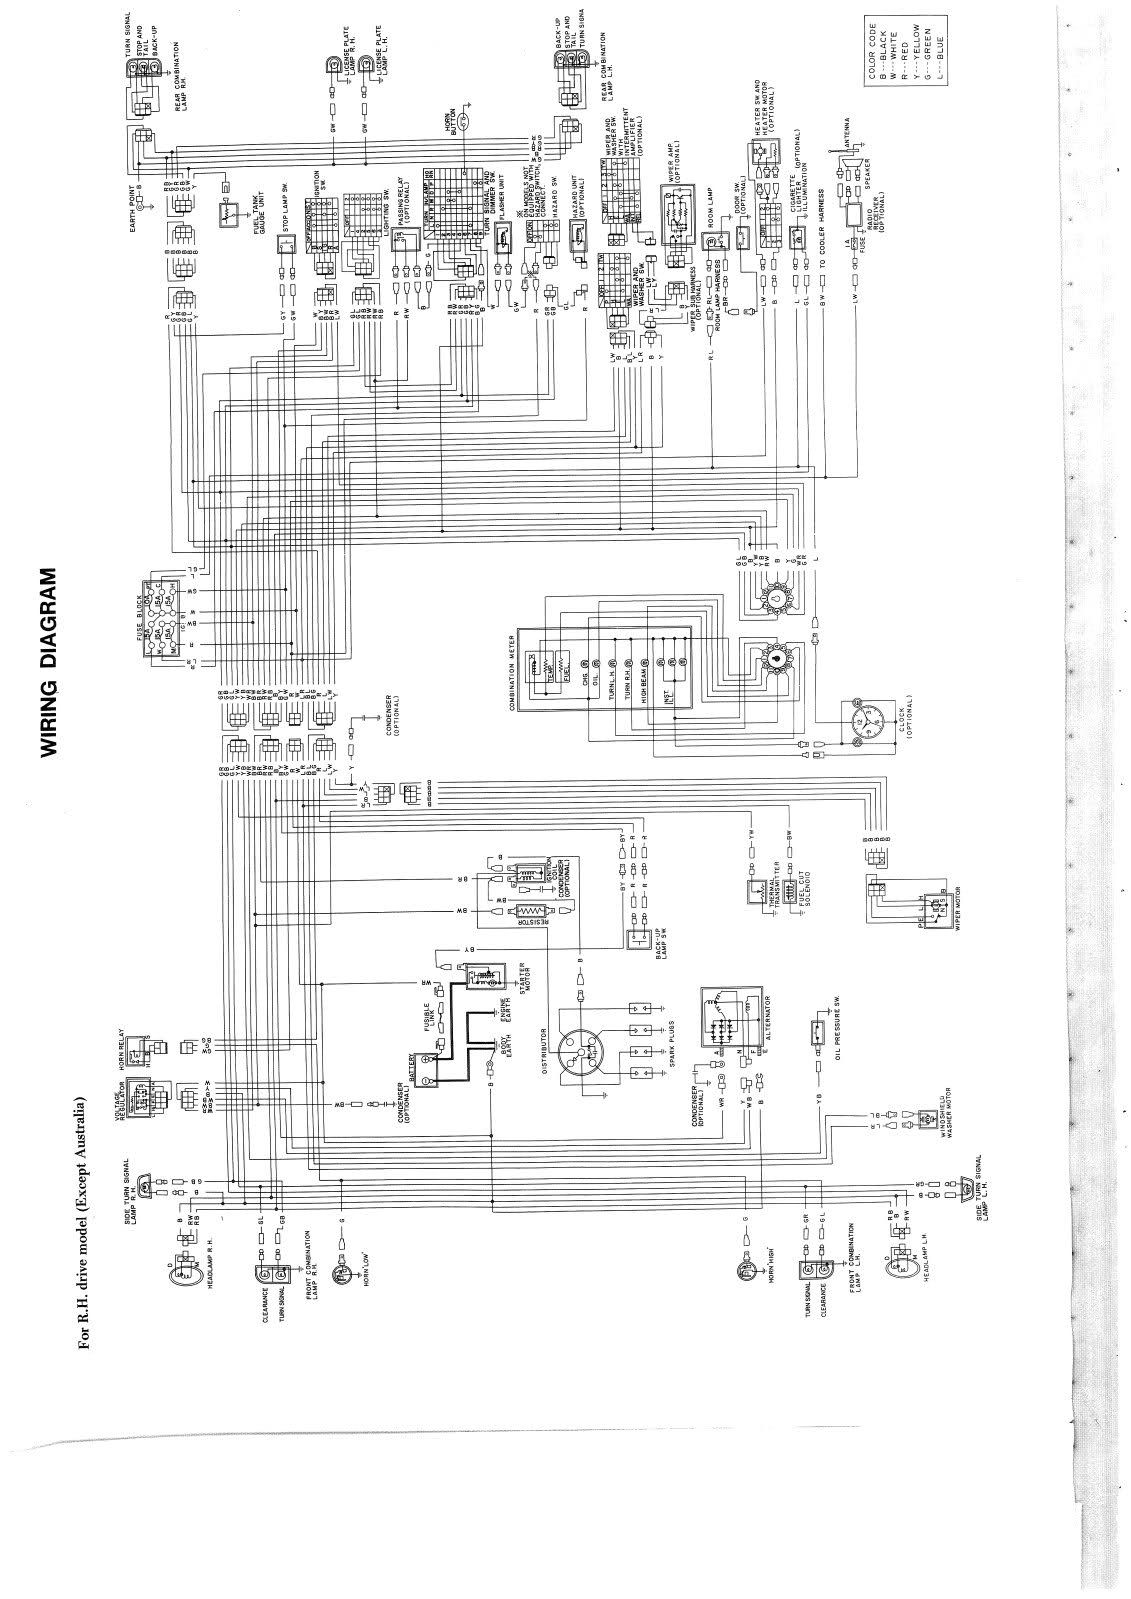 medium resolution of 1974 datsun 620 truck wiring diagram